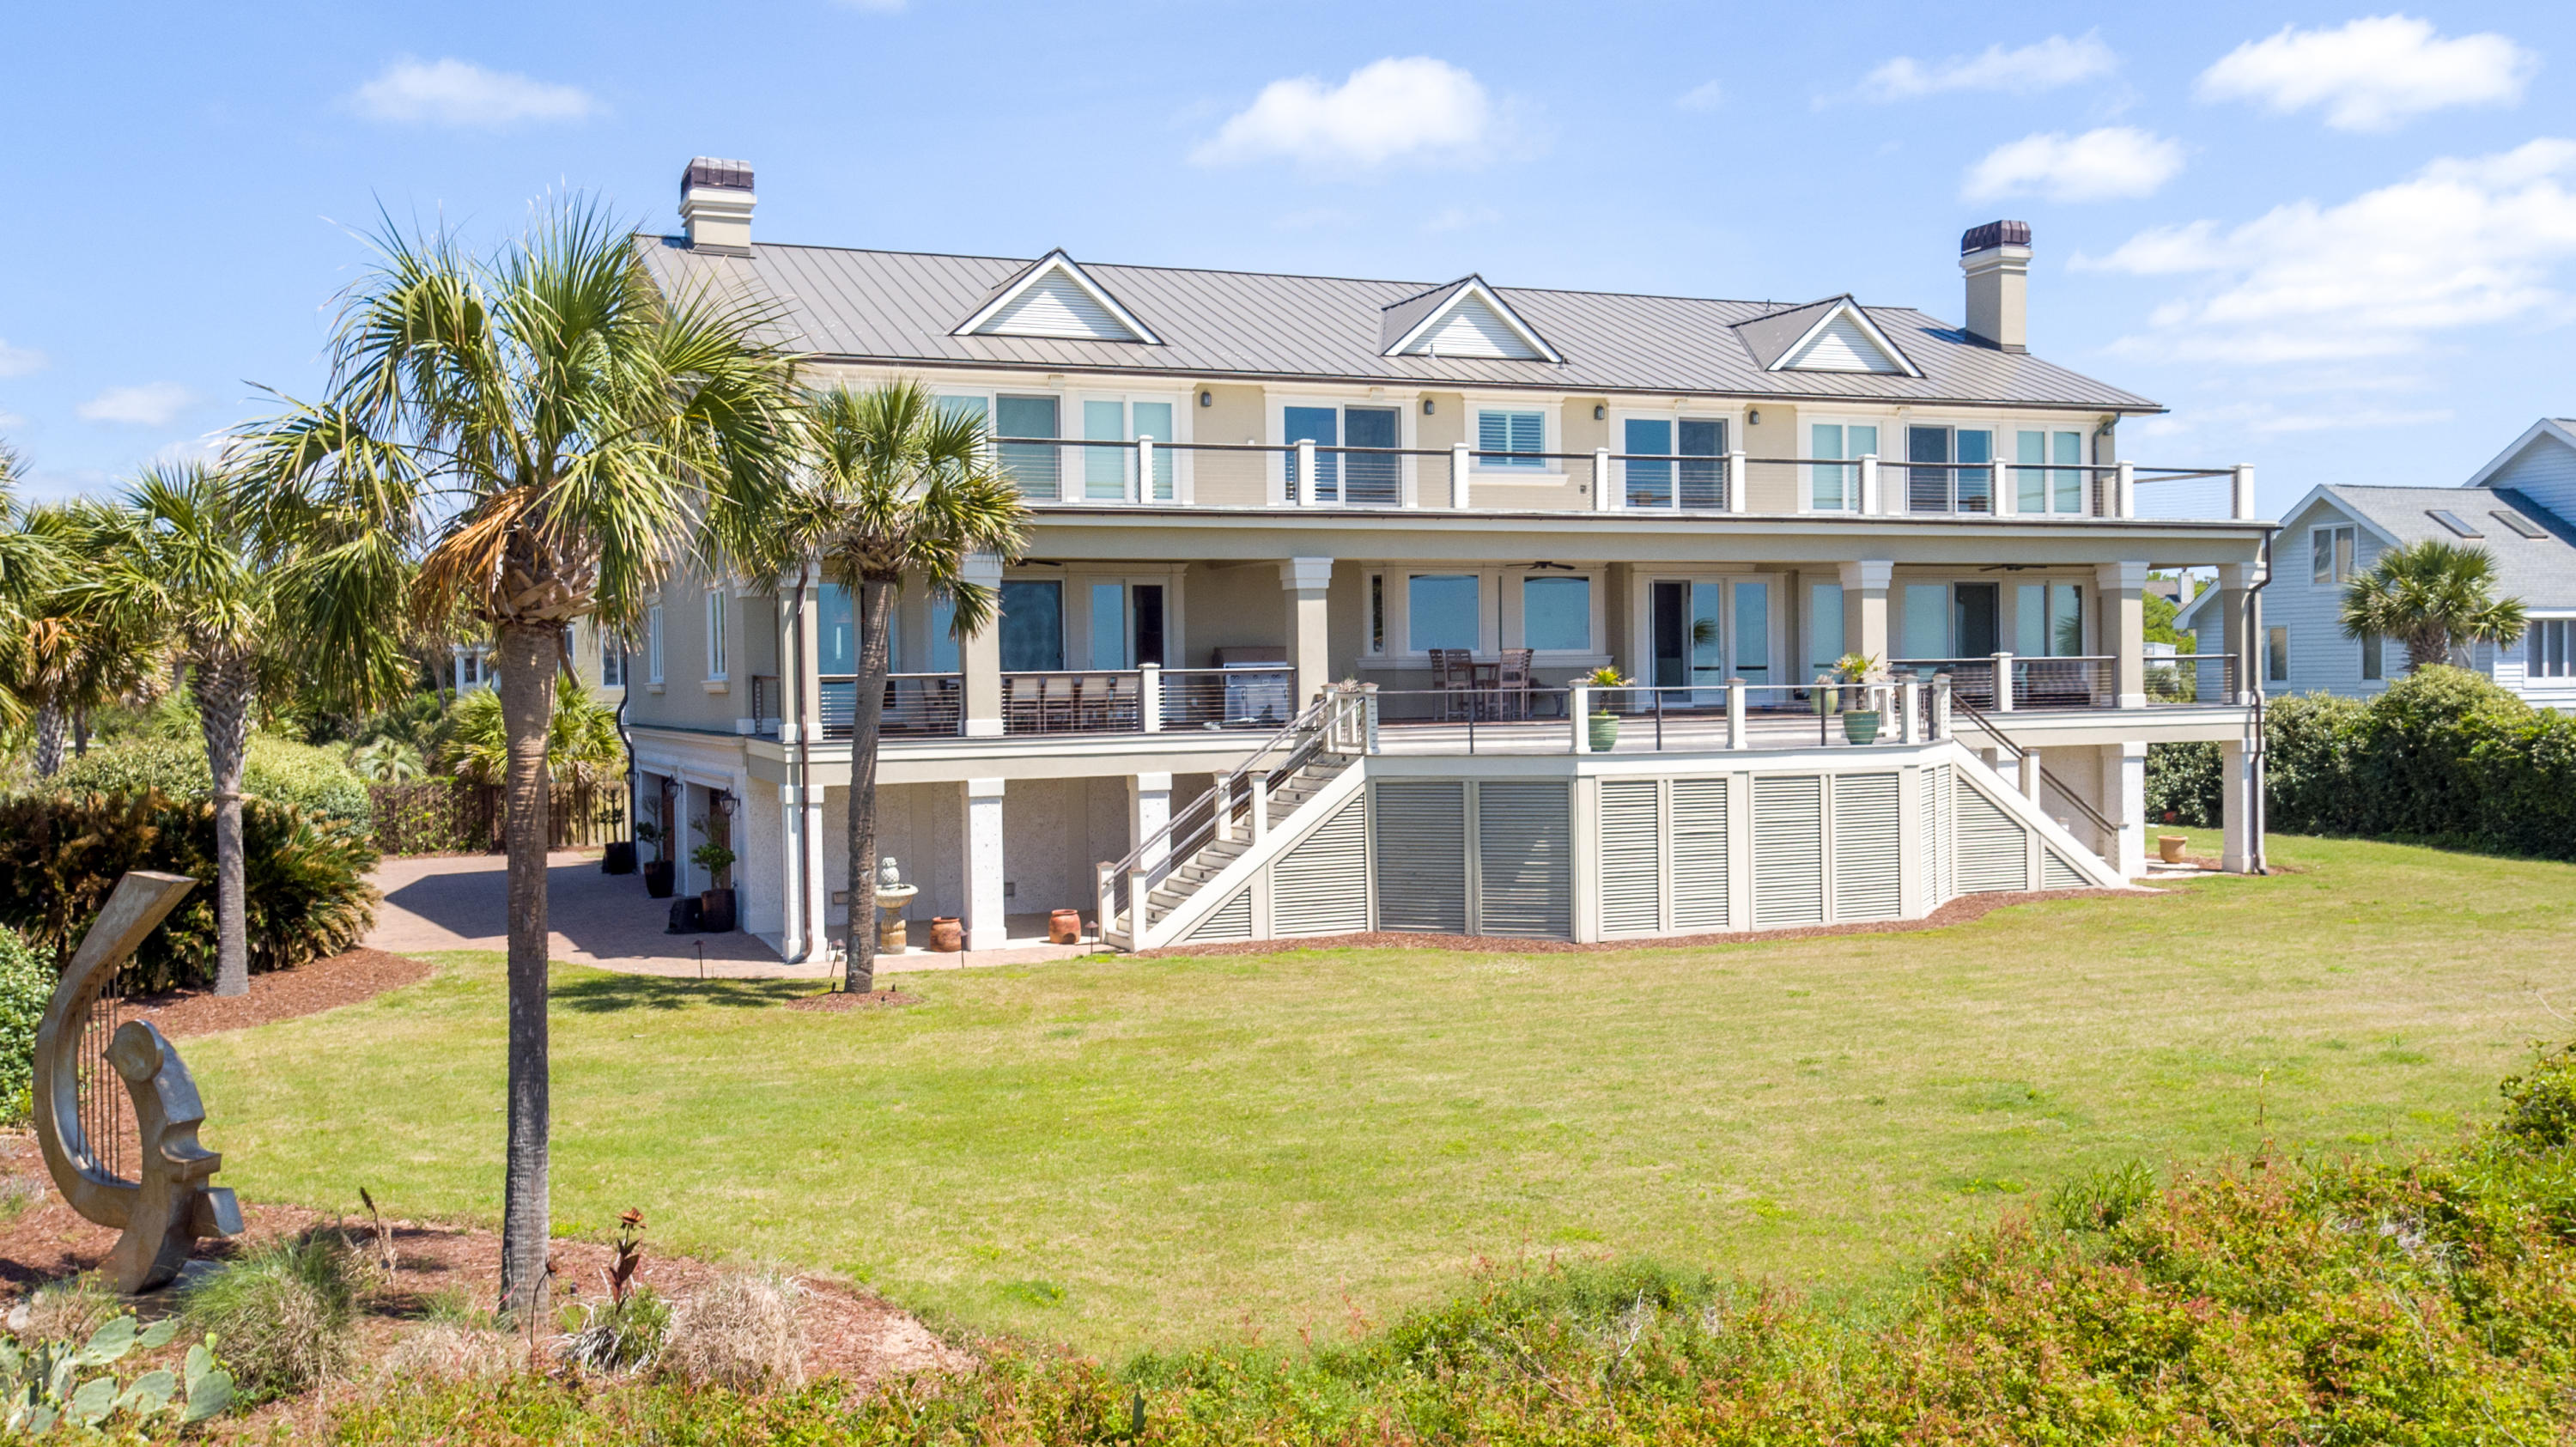 Isle of Palms Homes For Sale - 2 50th, Isle of Palms, SC - 51